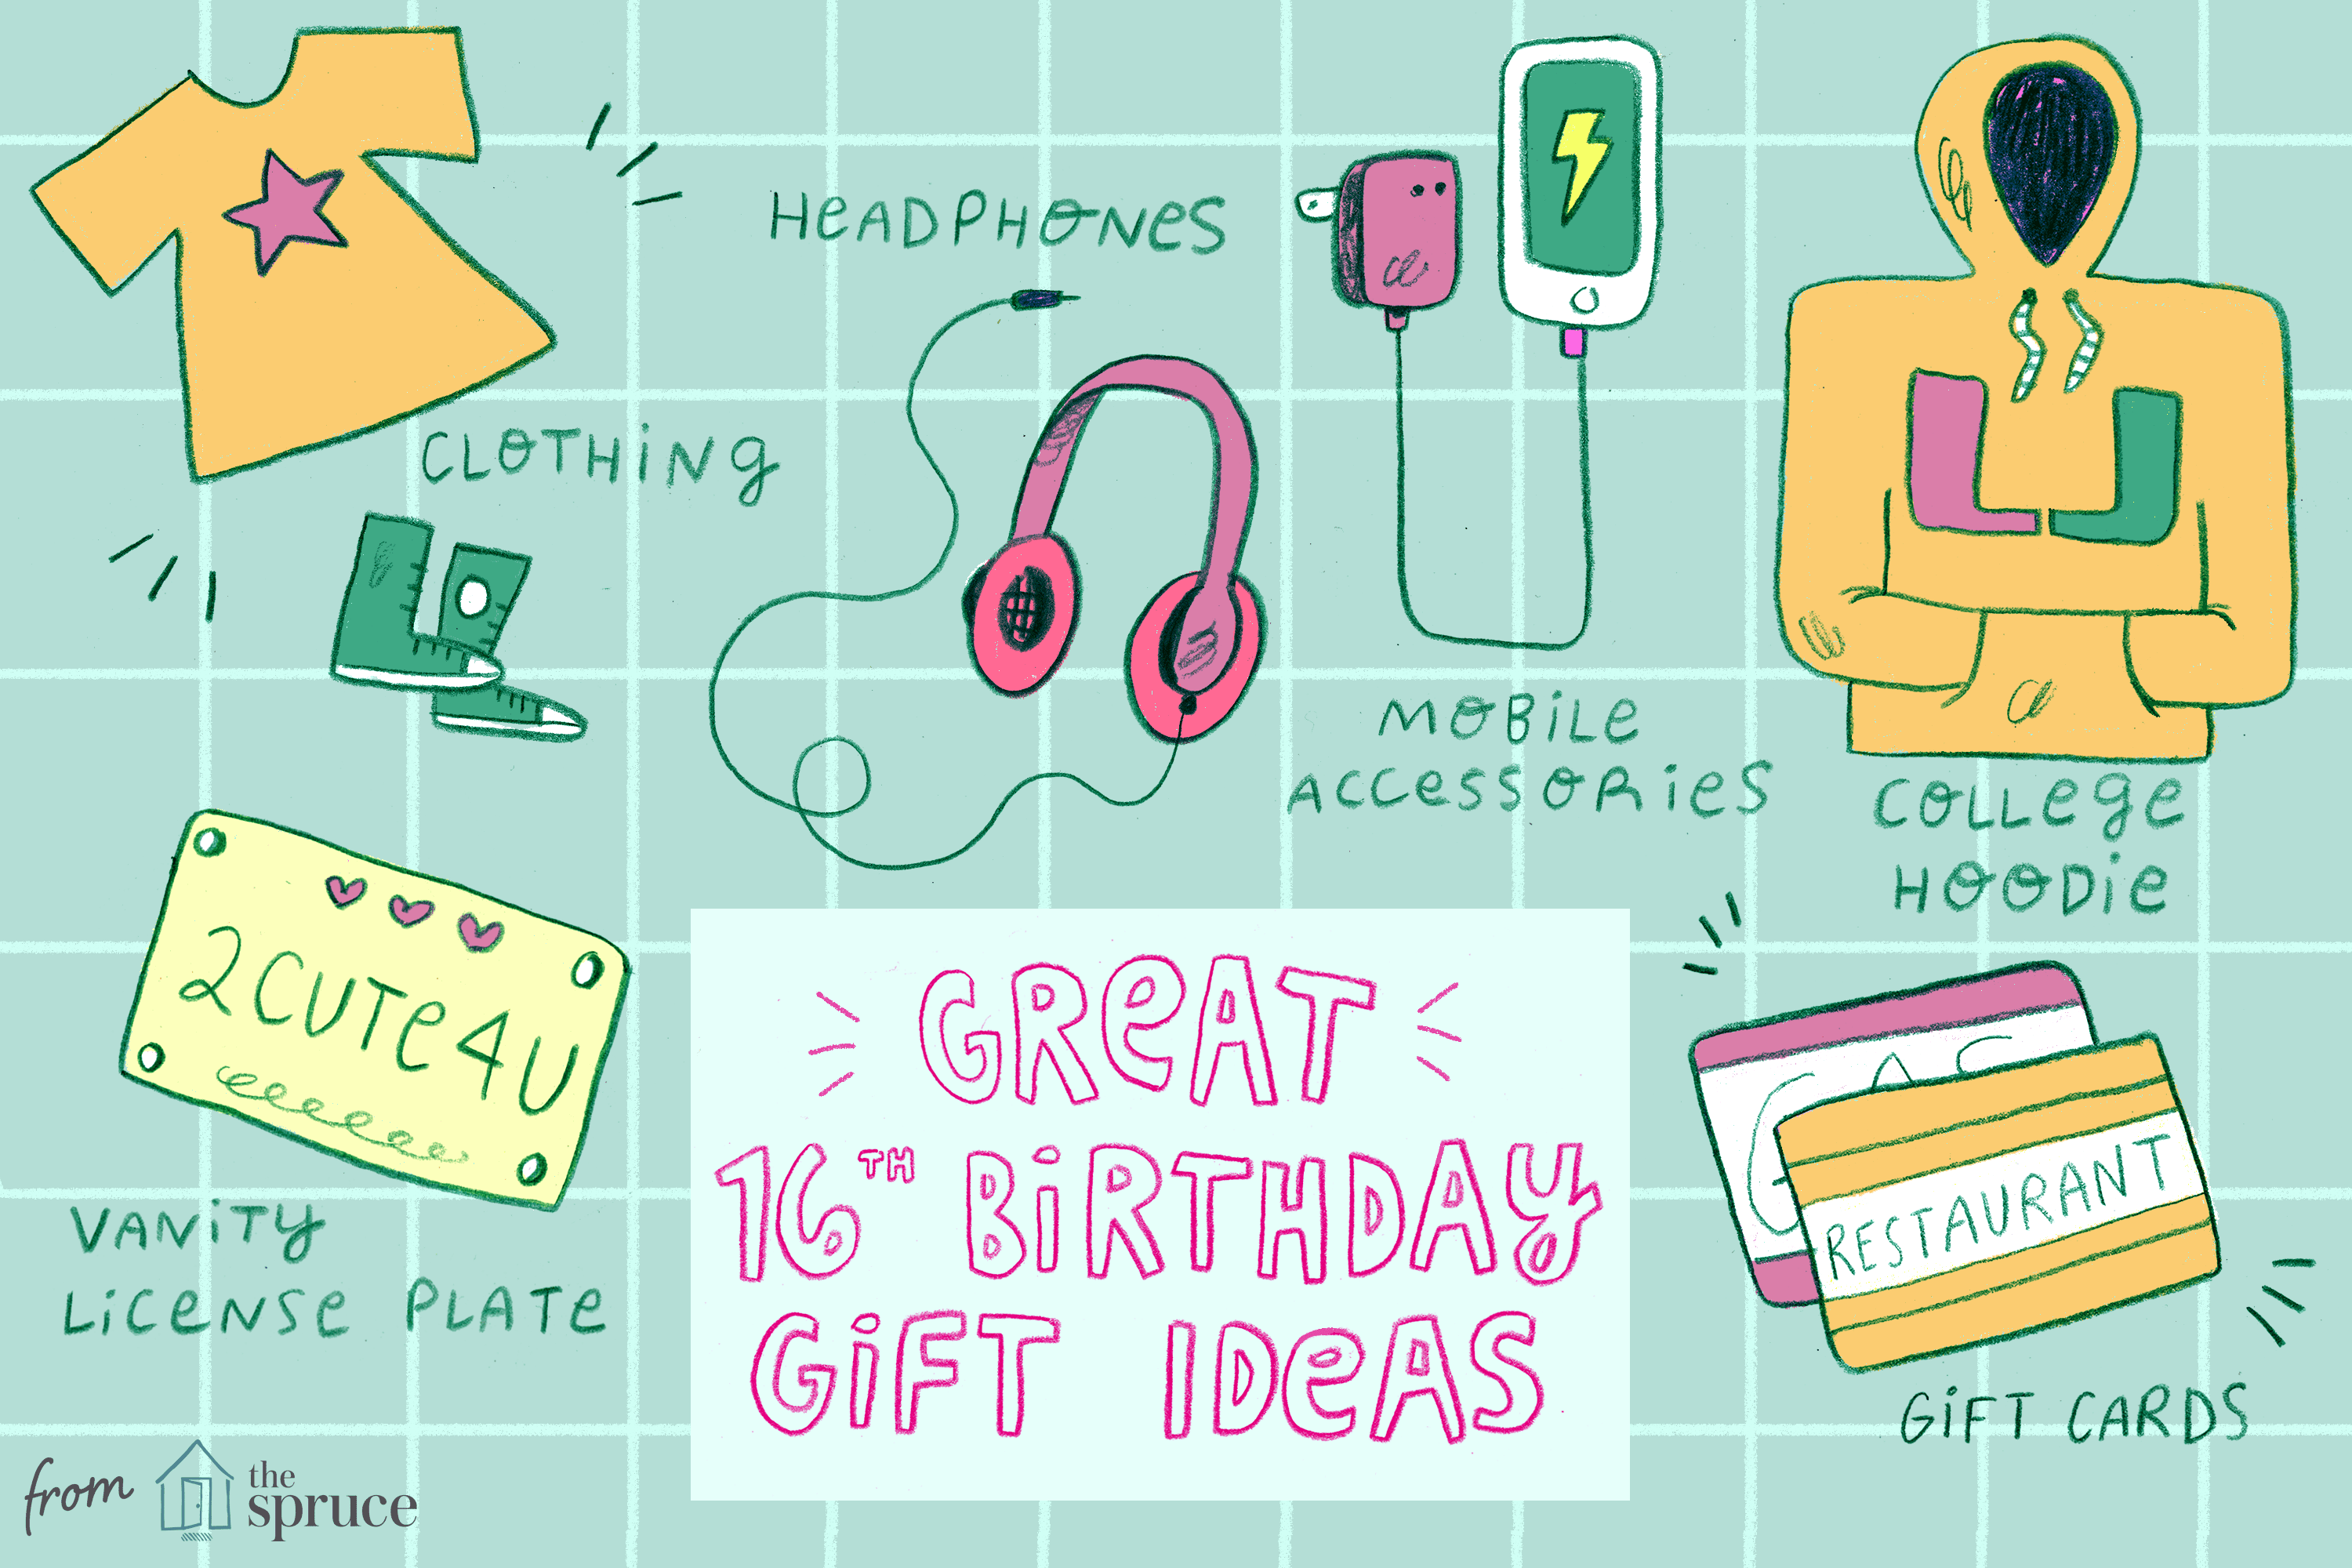 sweet 16 birthday gift ideas 20 Awesome Ideas for 16th Birthday Gifts sweet 16 birthday gift ideas